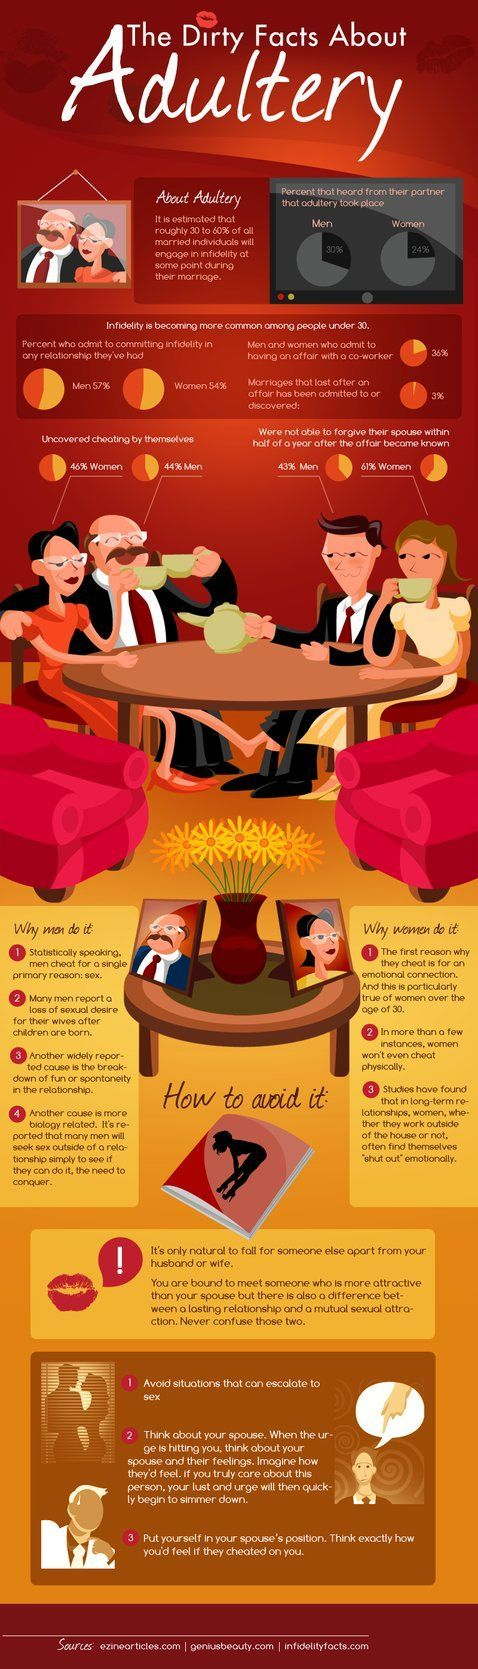 The dirty facts about adultery - Infographic